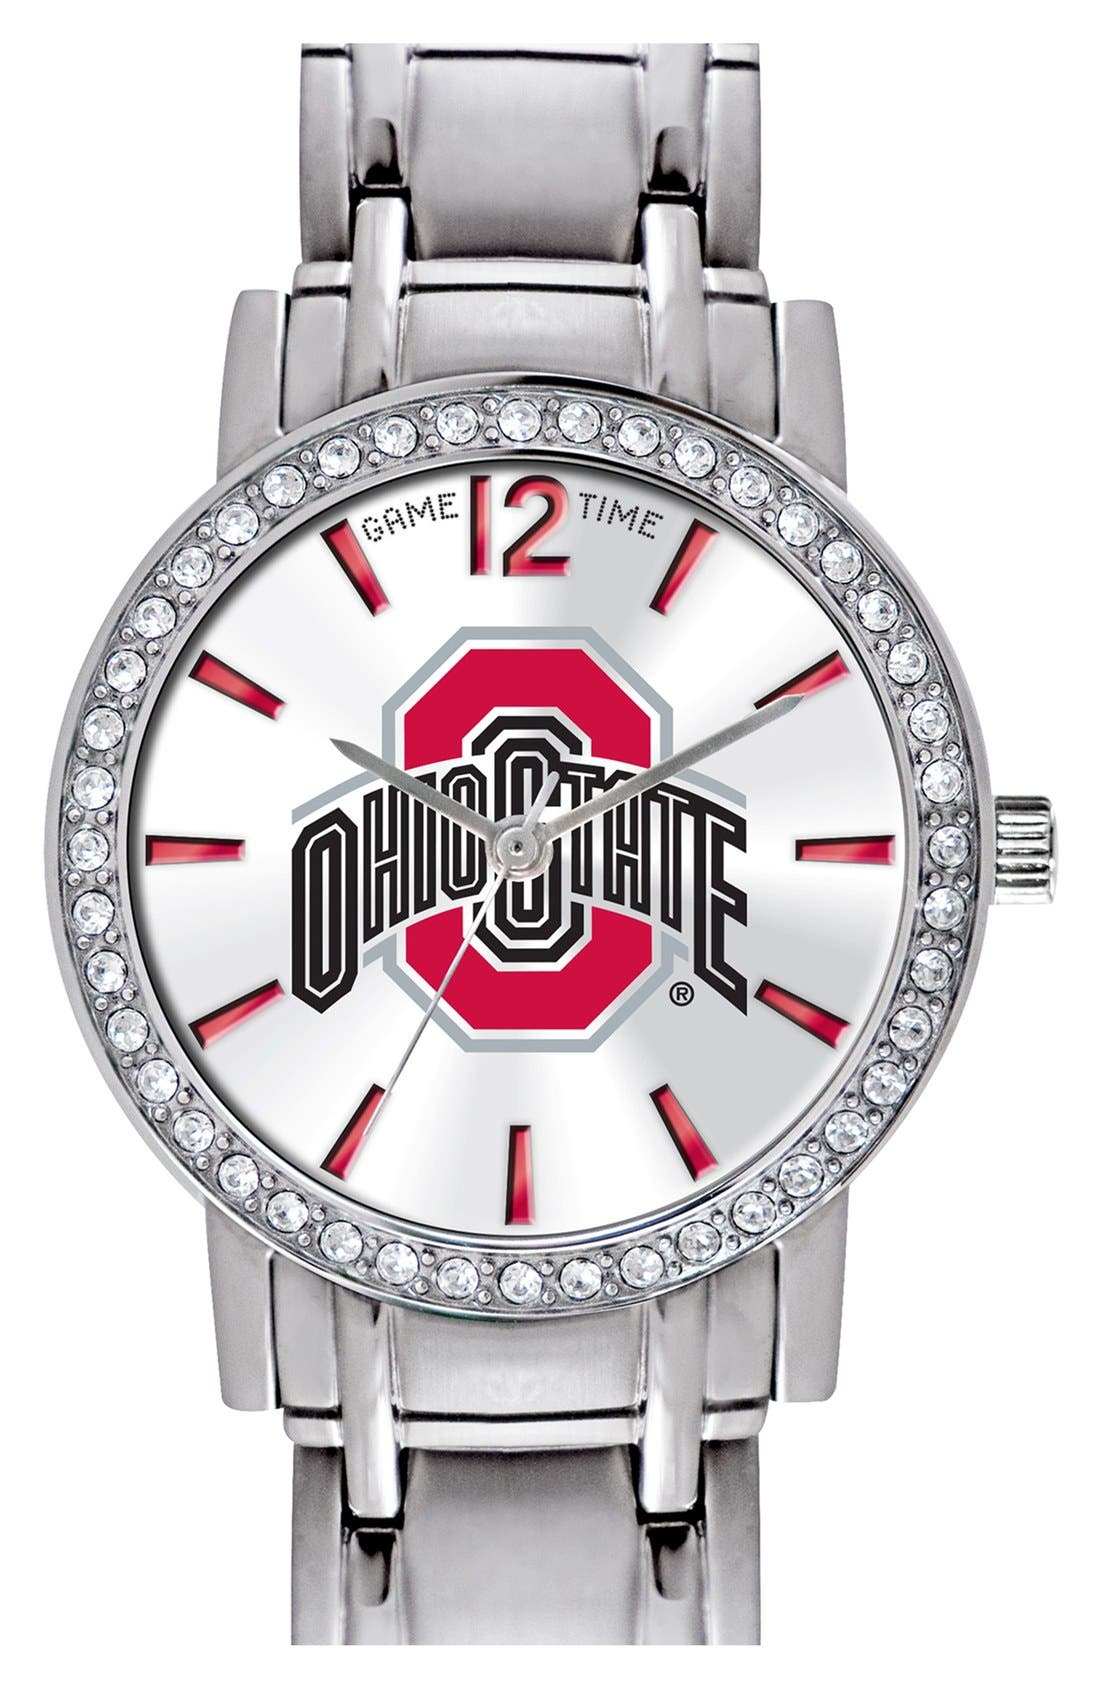 Main Image - Game Time Watches 'College All Star - Ohio State University' Crystal Bezel Bracelet Watch, 32mm